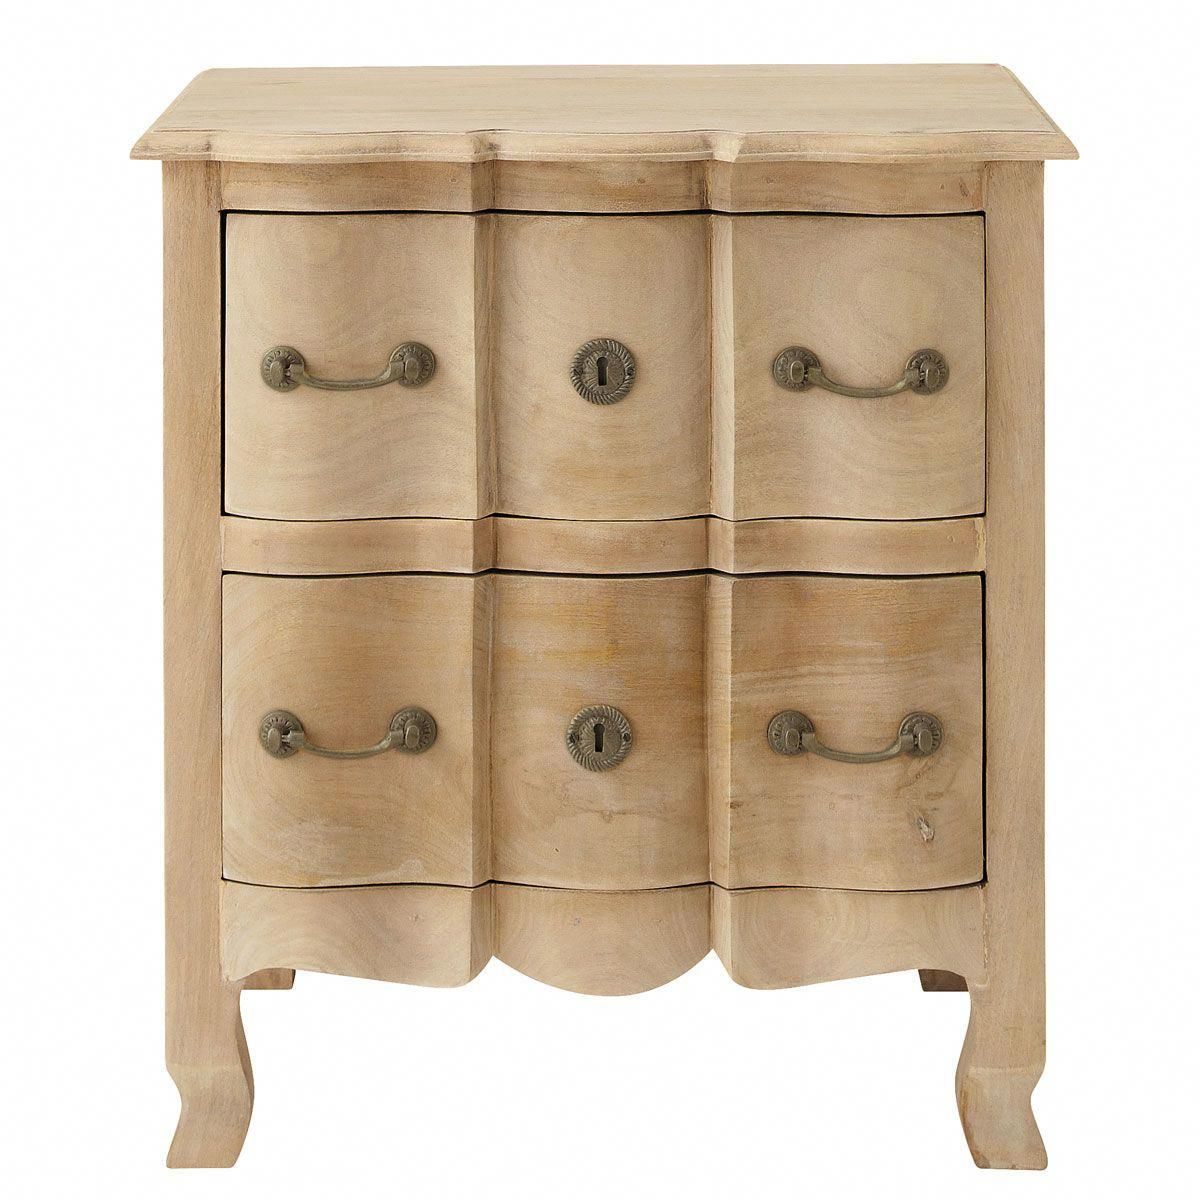 Mango Wood And Acacia Bedside Table With Drawers In 2019